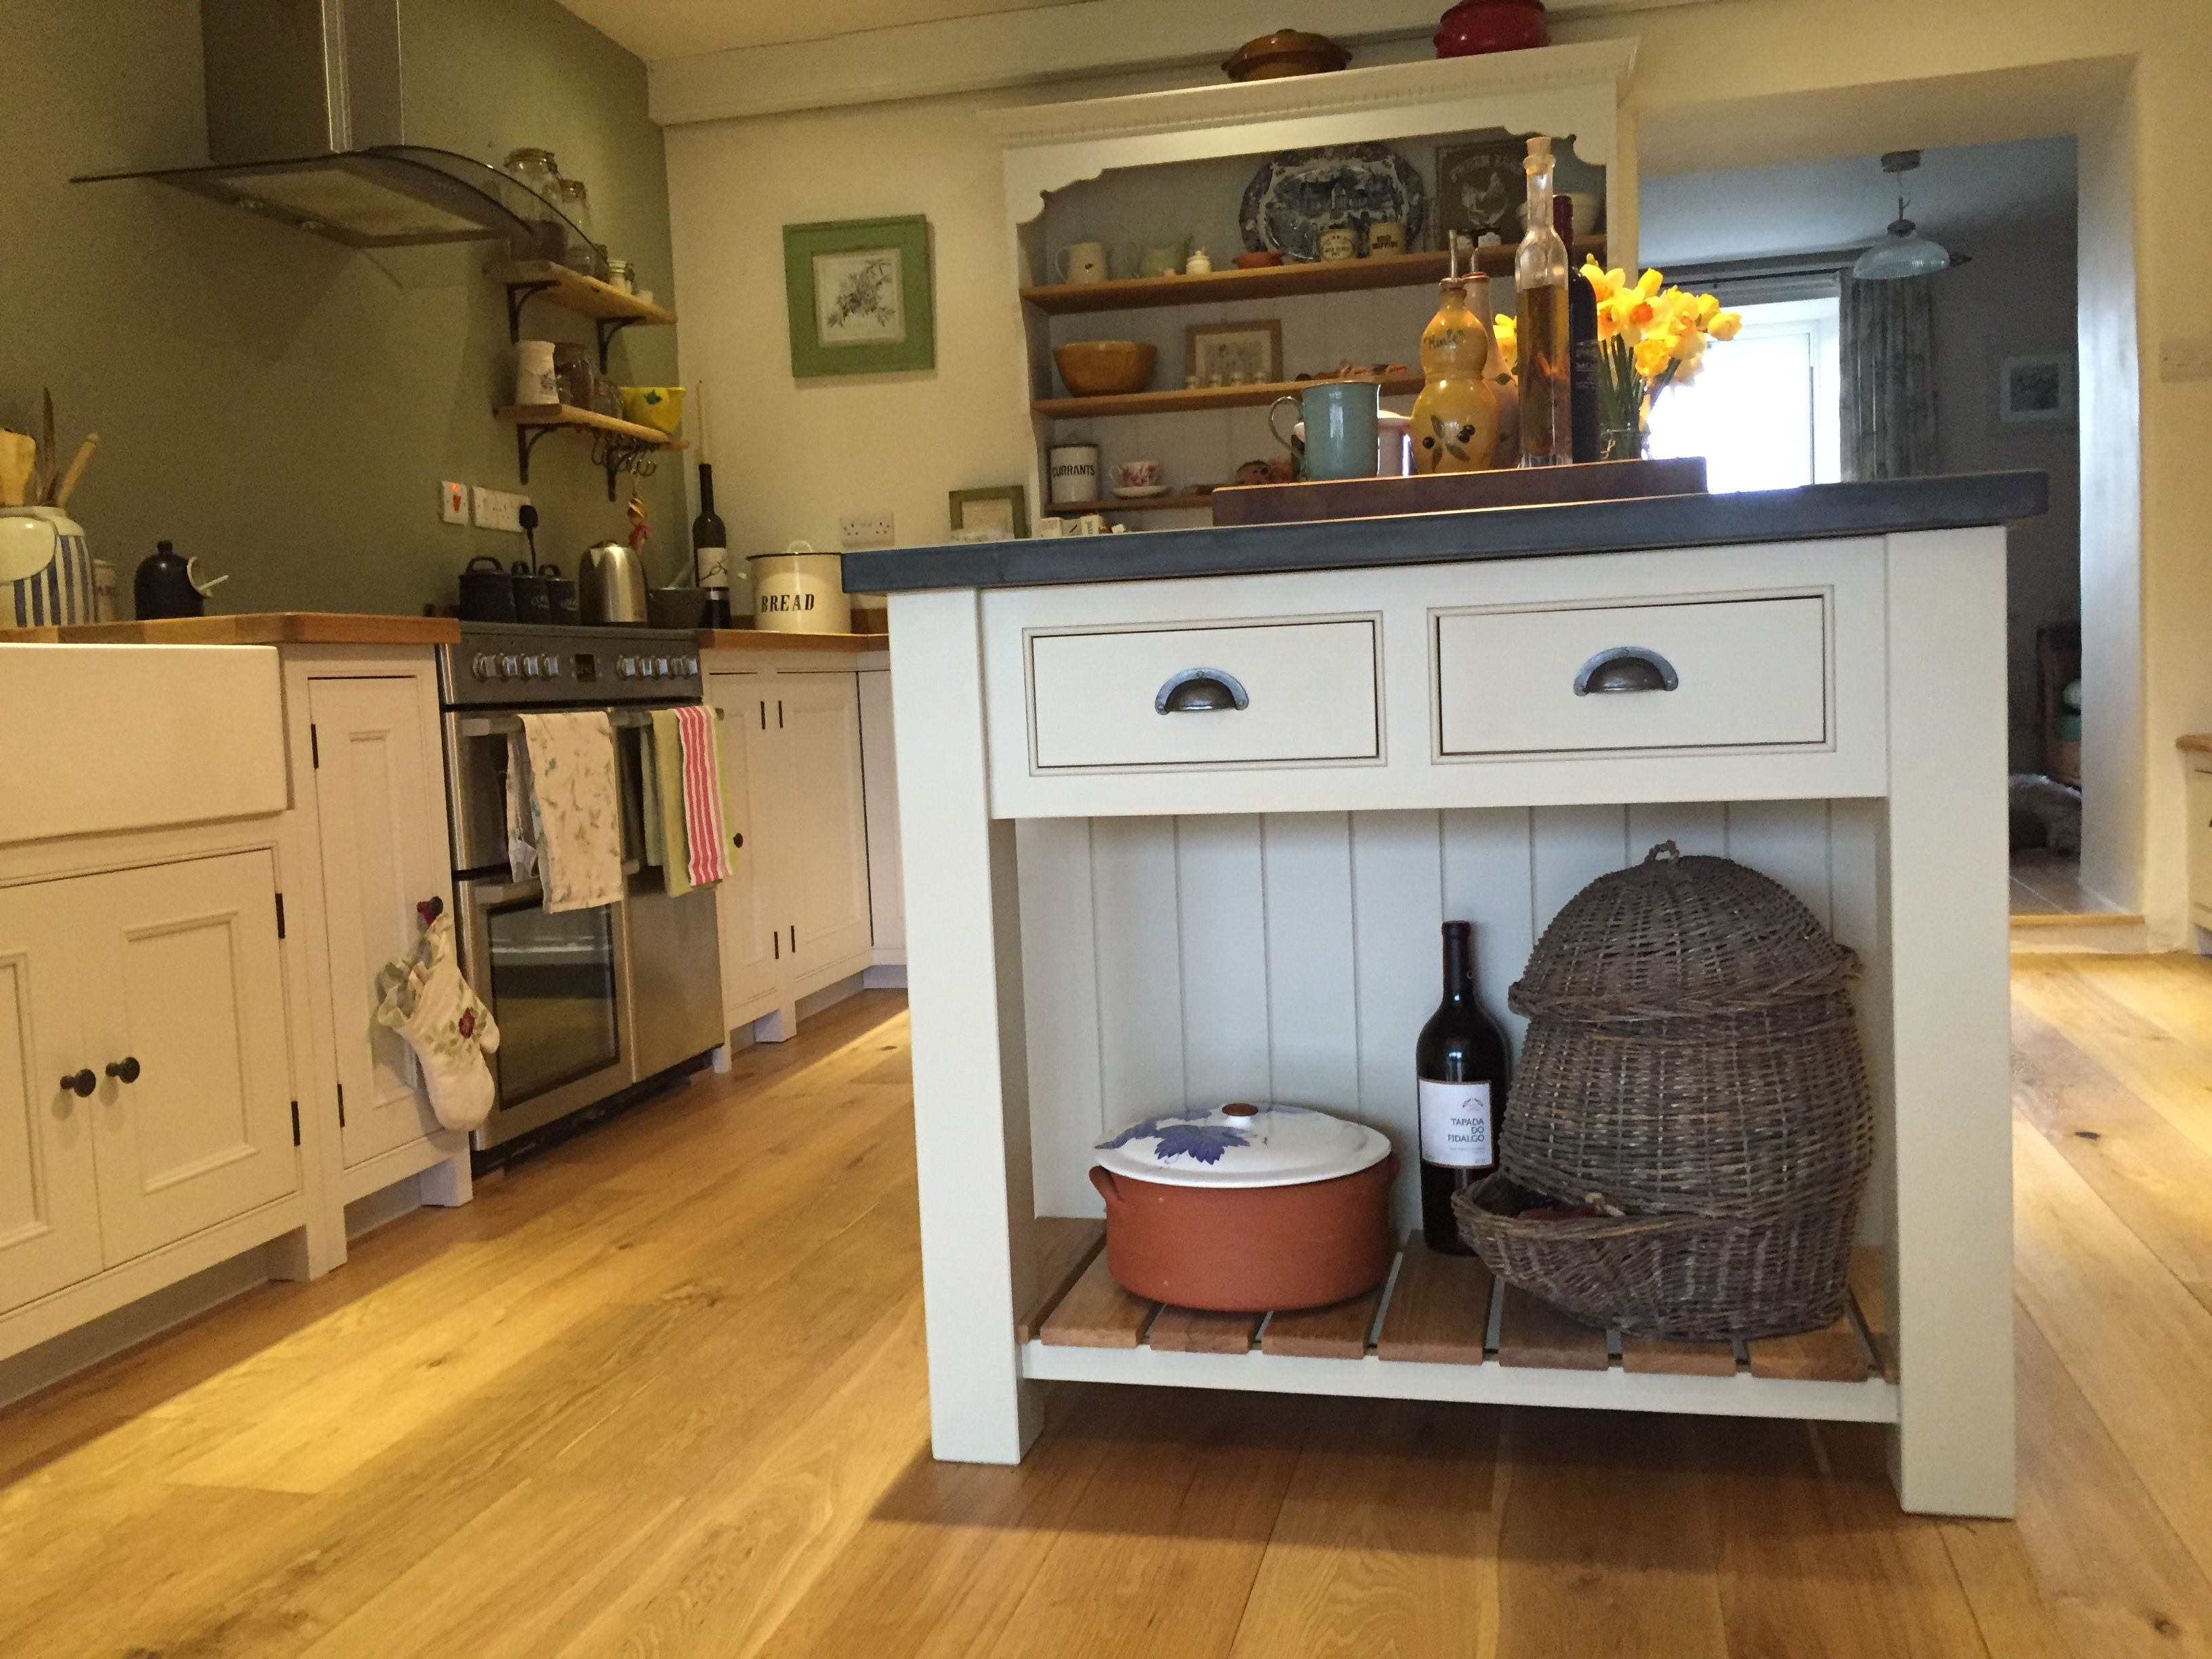 A lovely example of a beautiful handmade kitchen, with off